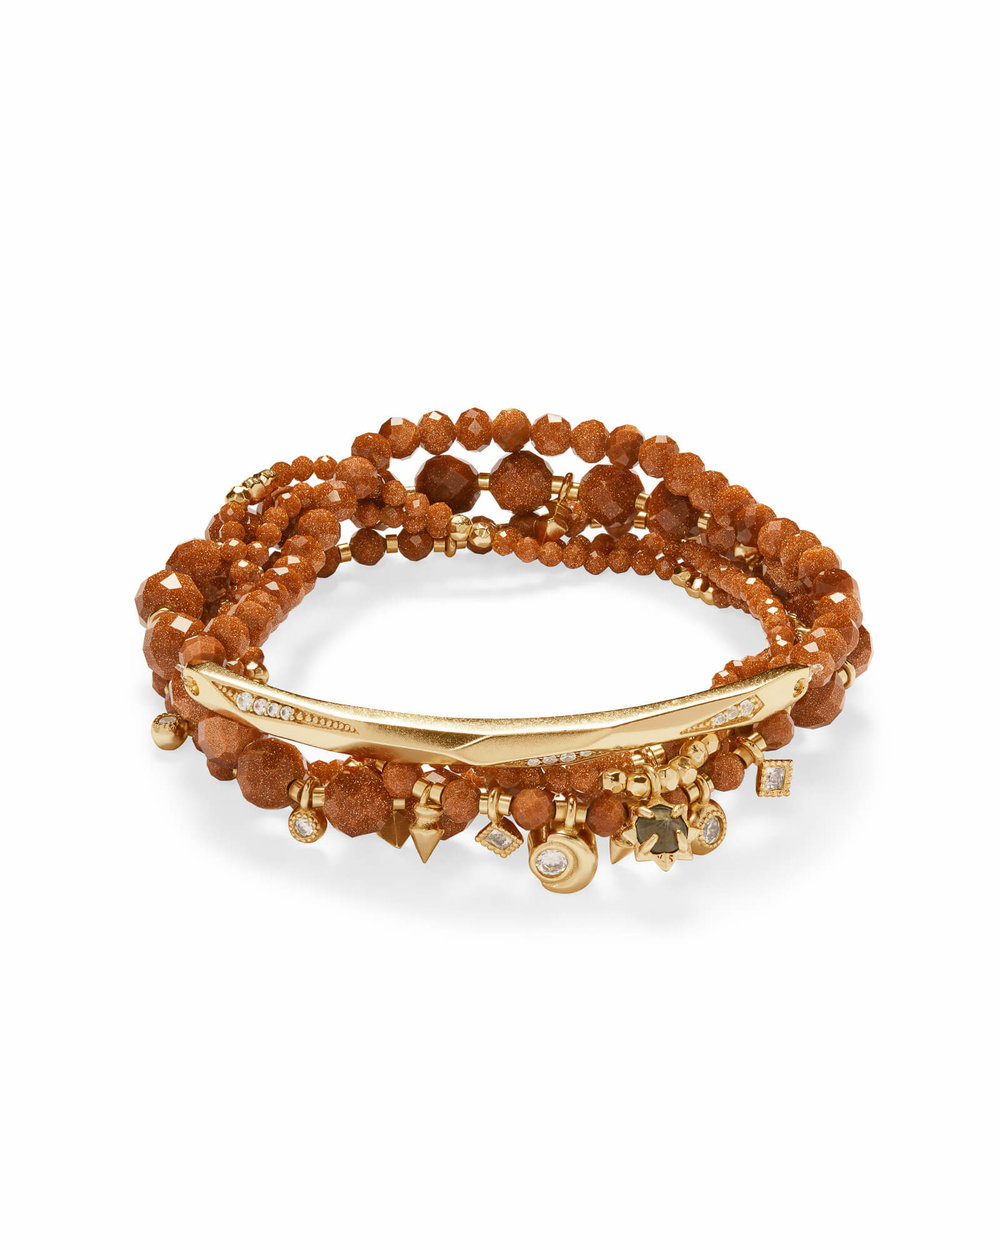 Supak Gold</br>Beaded Bracelet</br><i>$95.00</i>